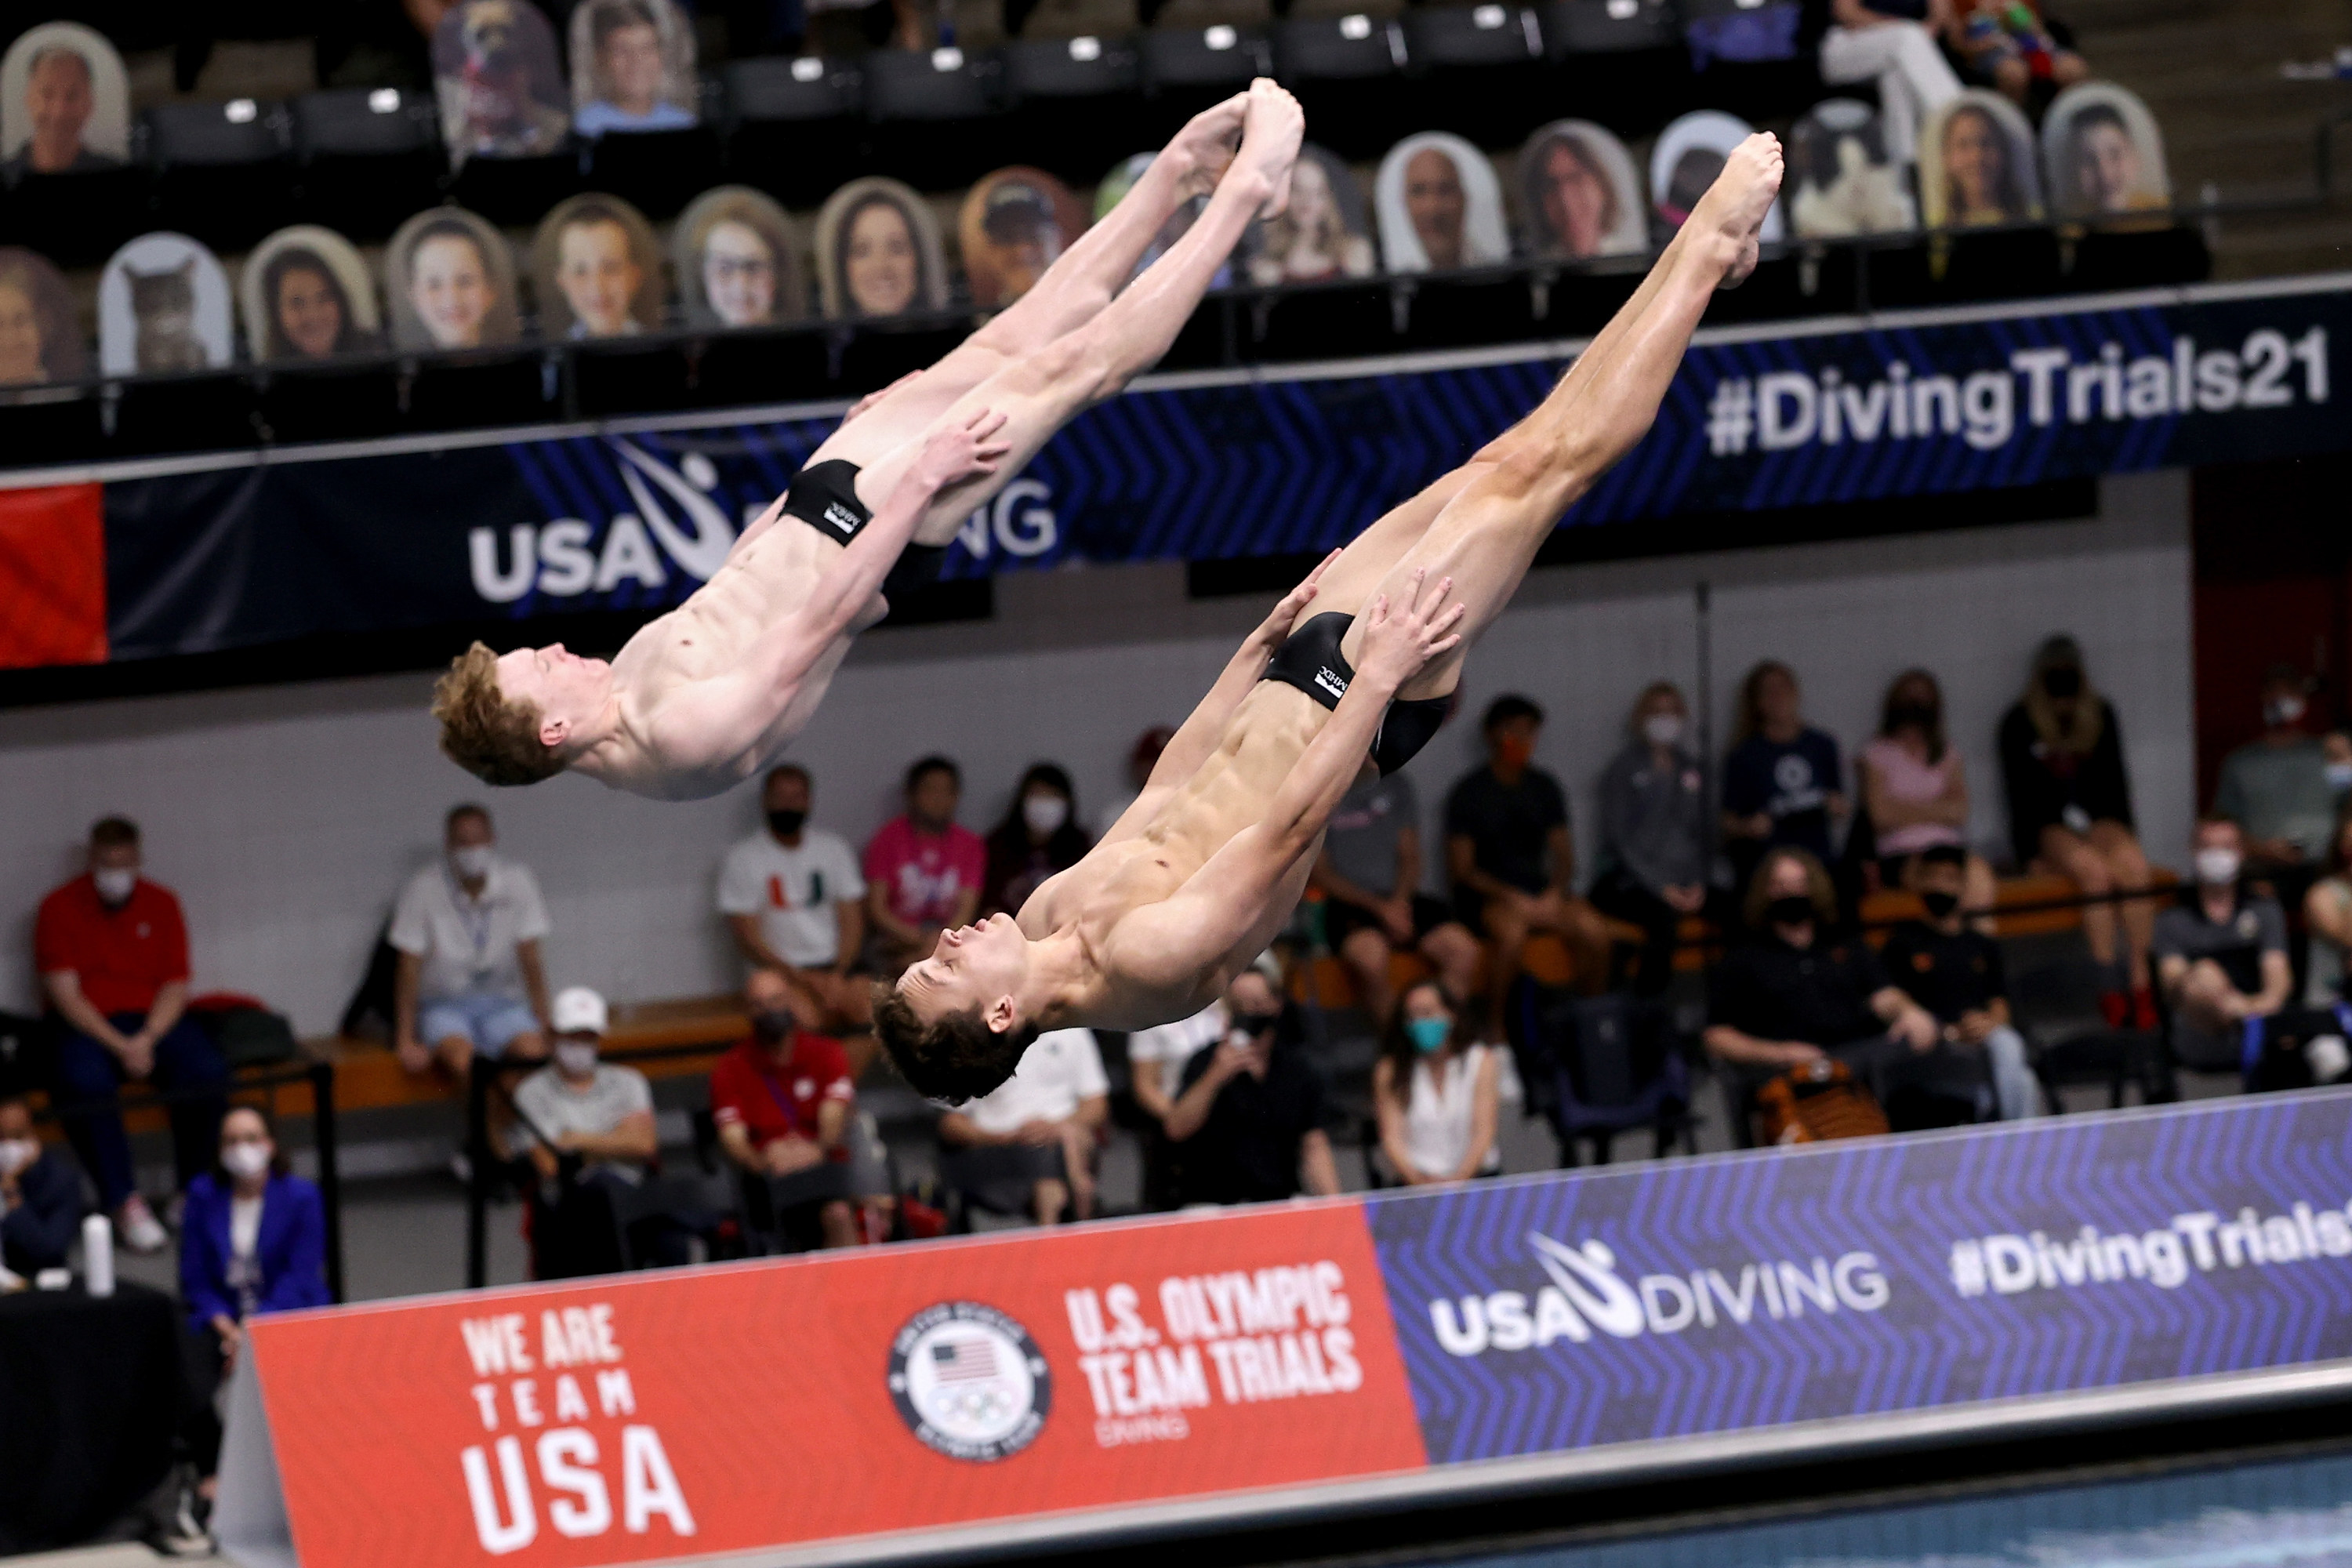 Two men diving backward and head first